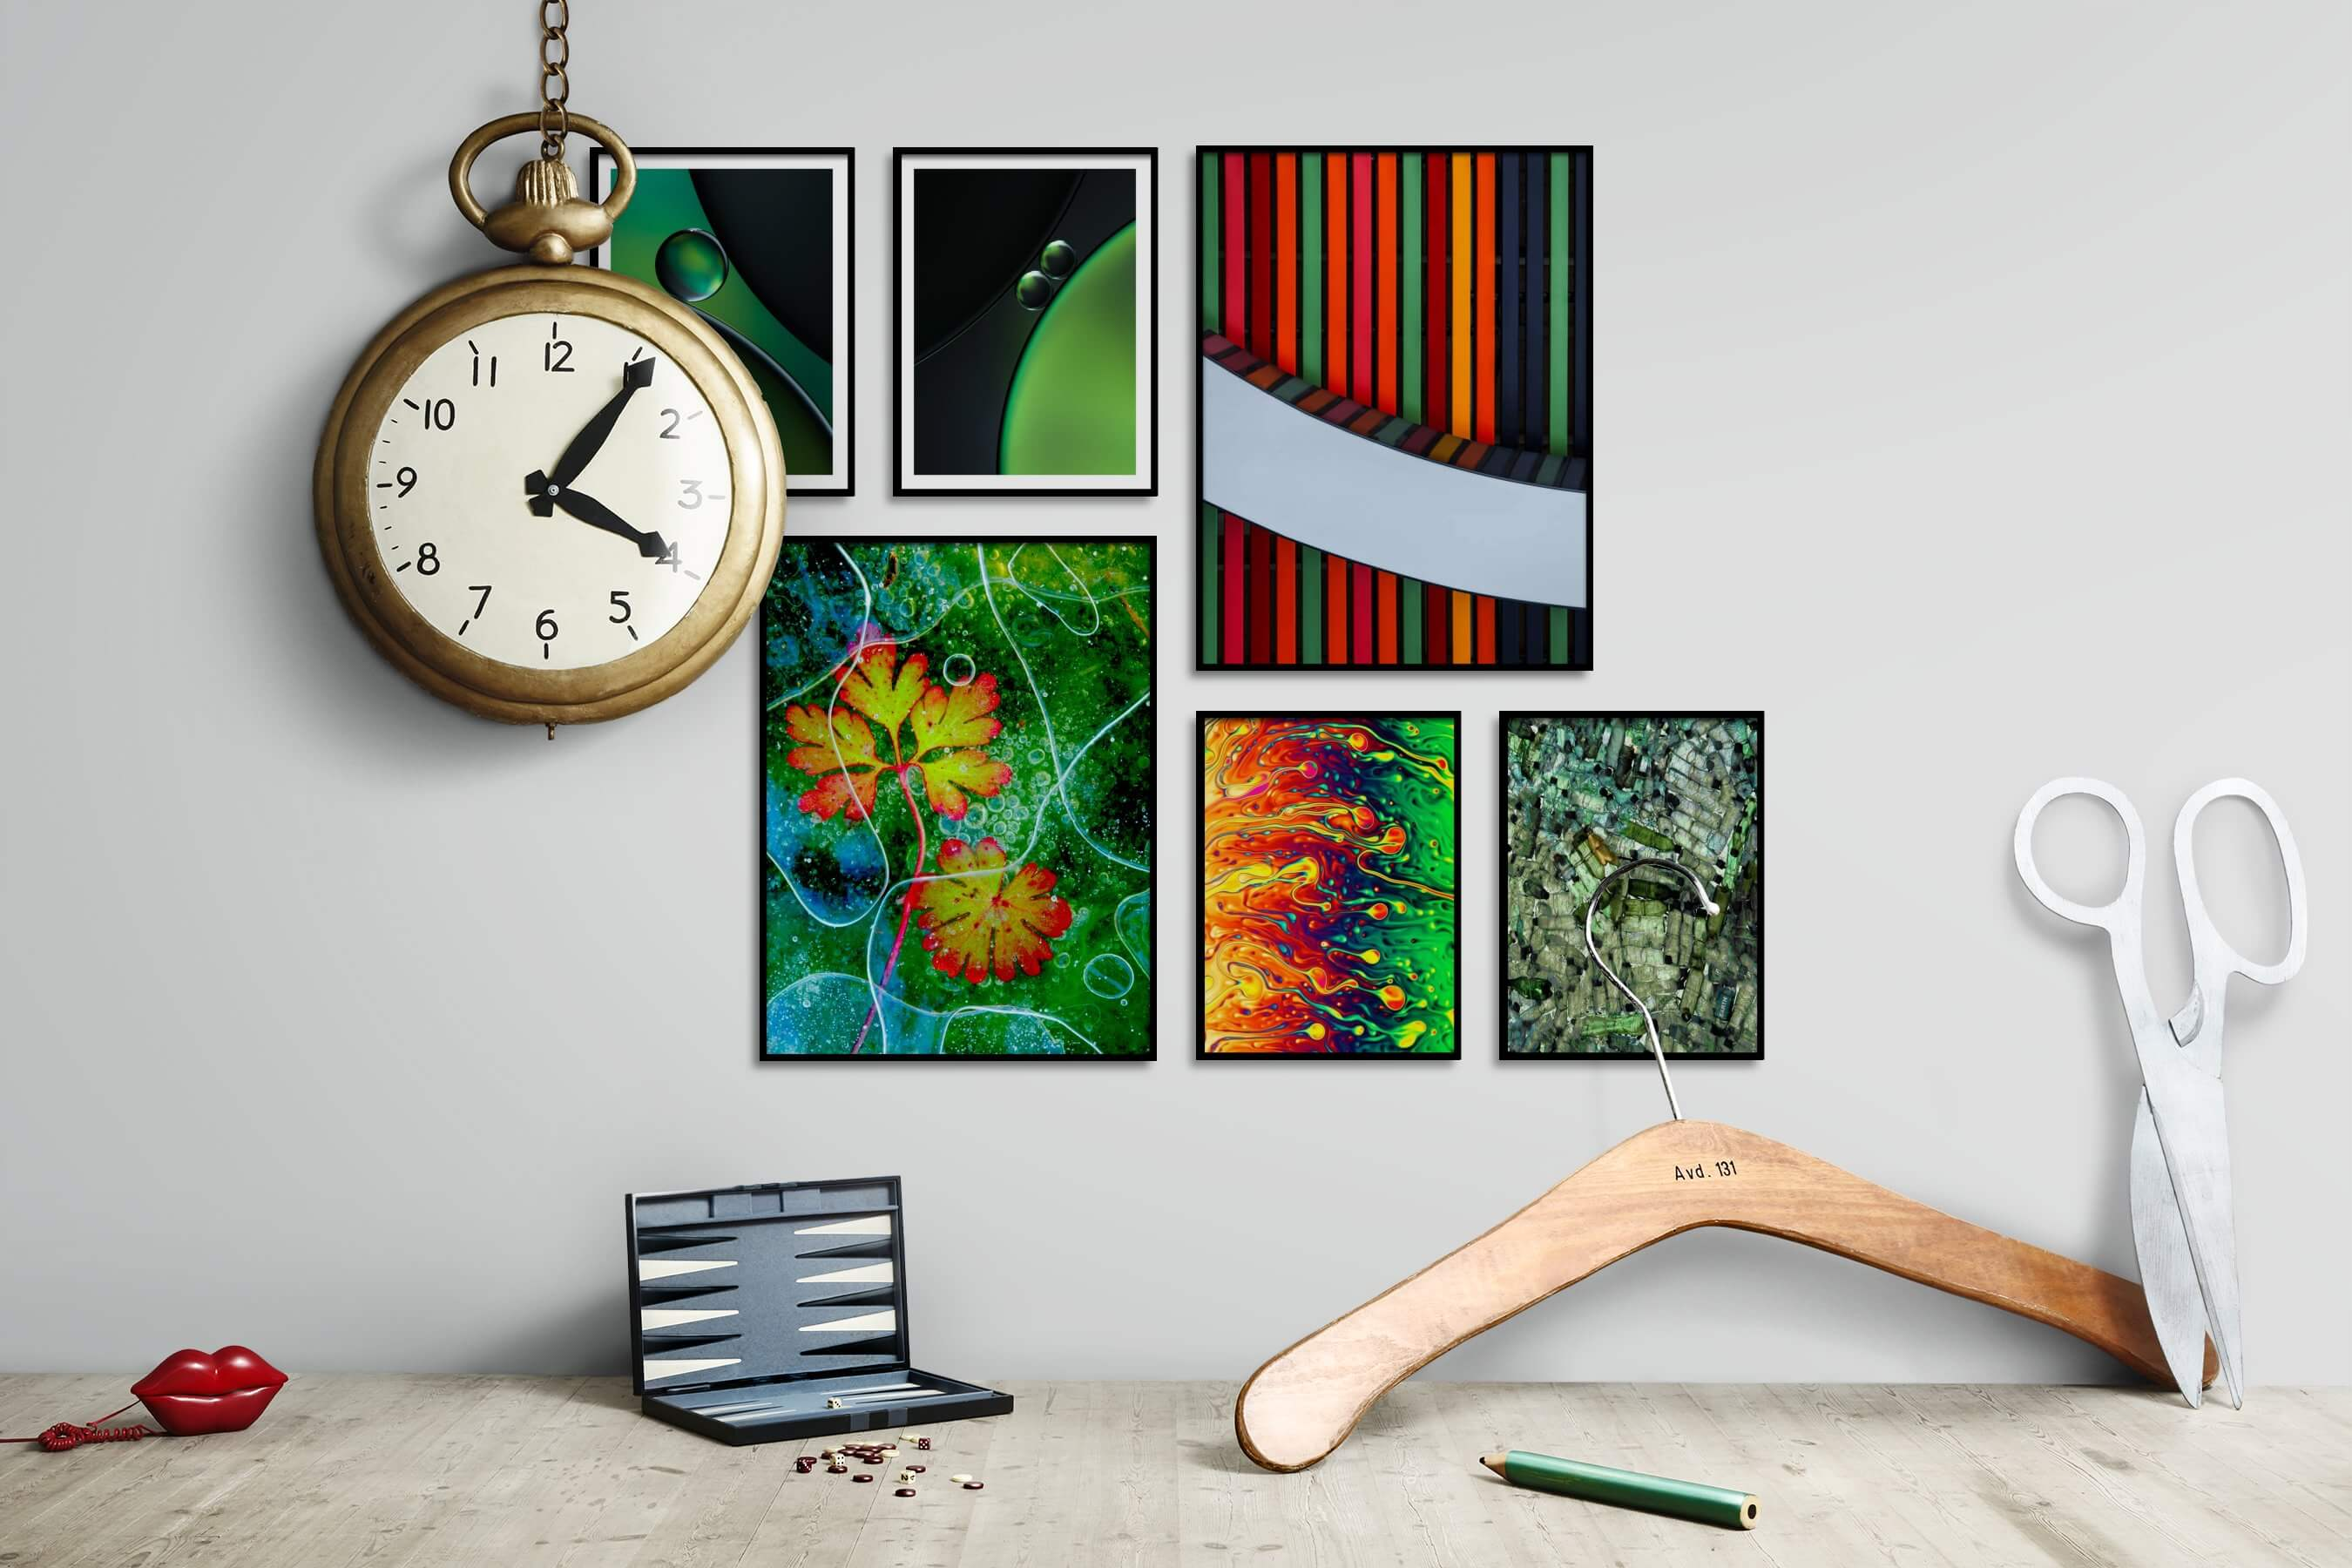 Gallery wall idea with six framed pictures arranged on a wall depicting For the Minimalist, For the Maximalist, Flowers & Plants, Colorful, and For the Moderate